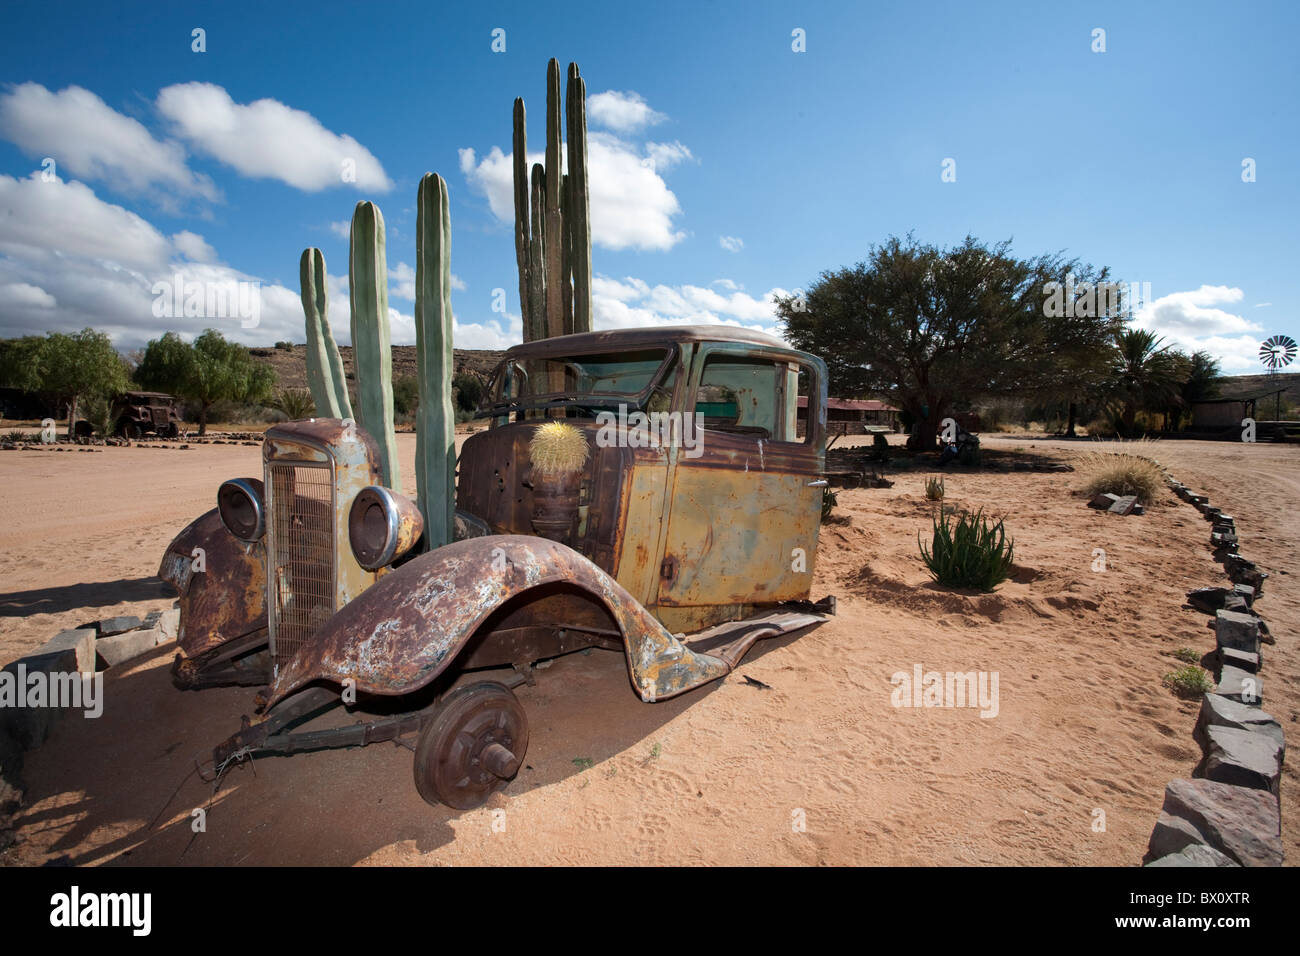 Old abandoned car with cactus growing through it, Namibia. - Stock Image